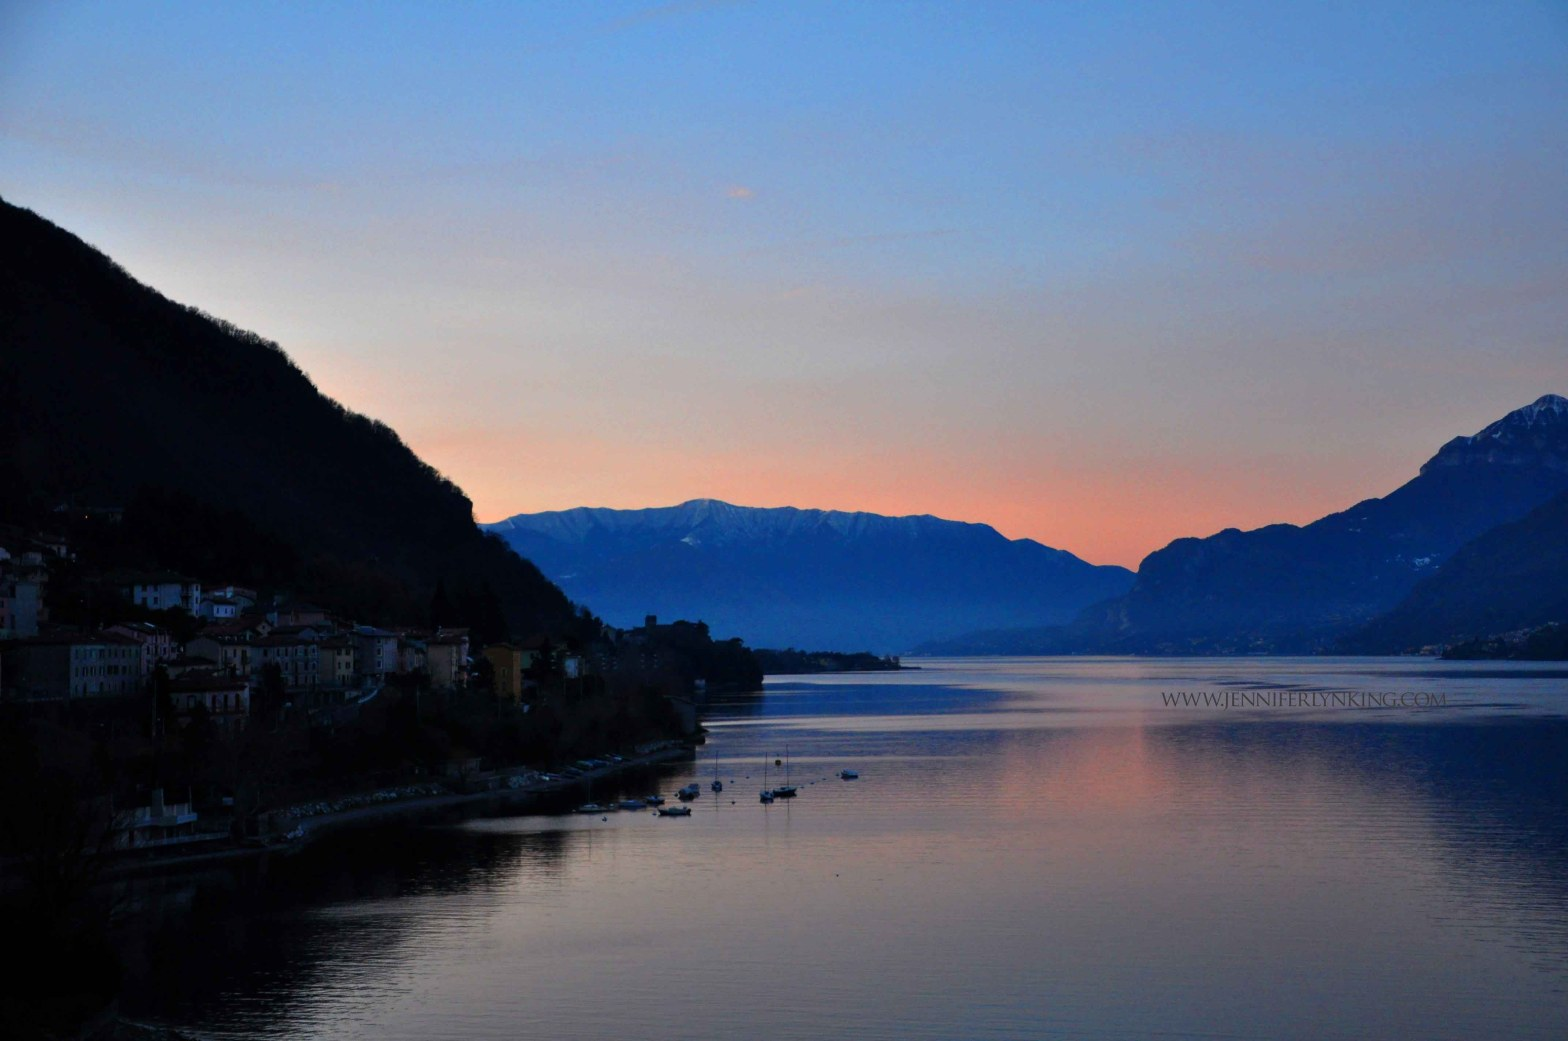 Lake Como at Sunrise, Northern Italy